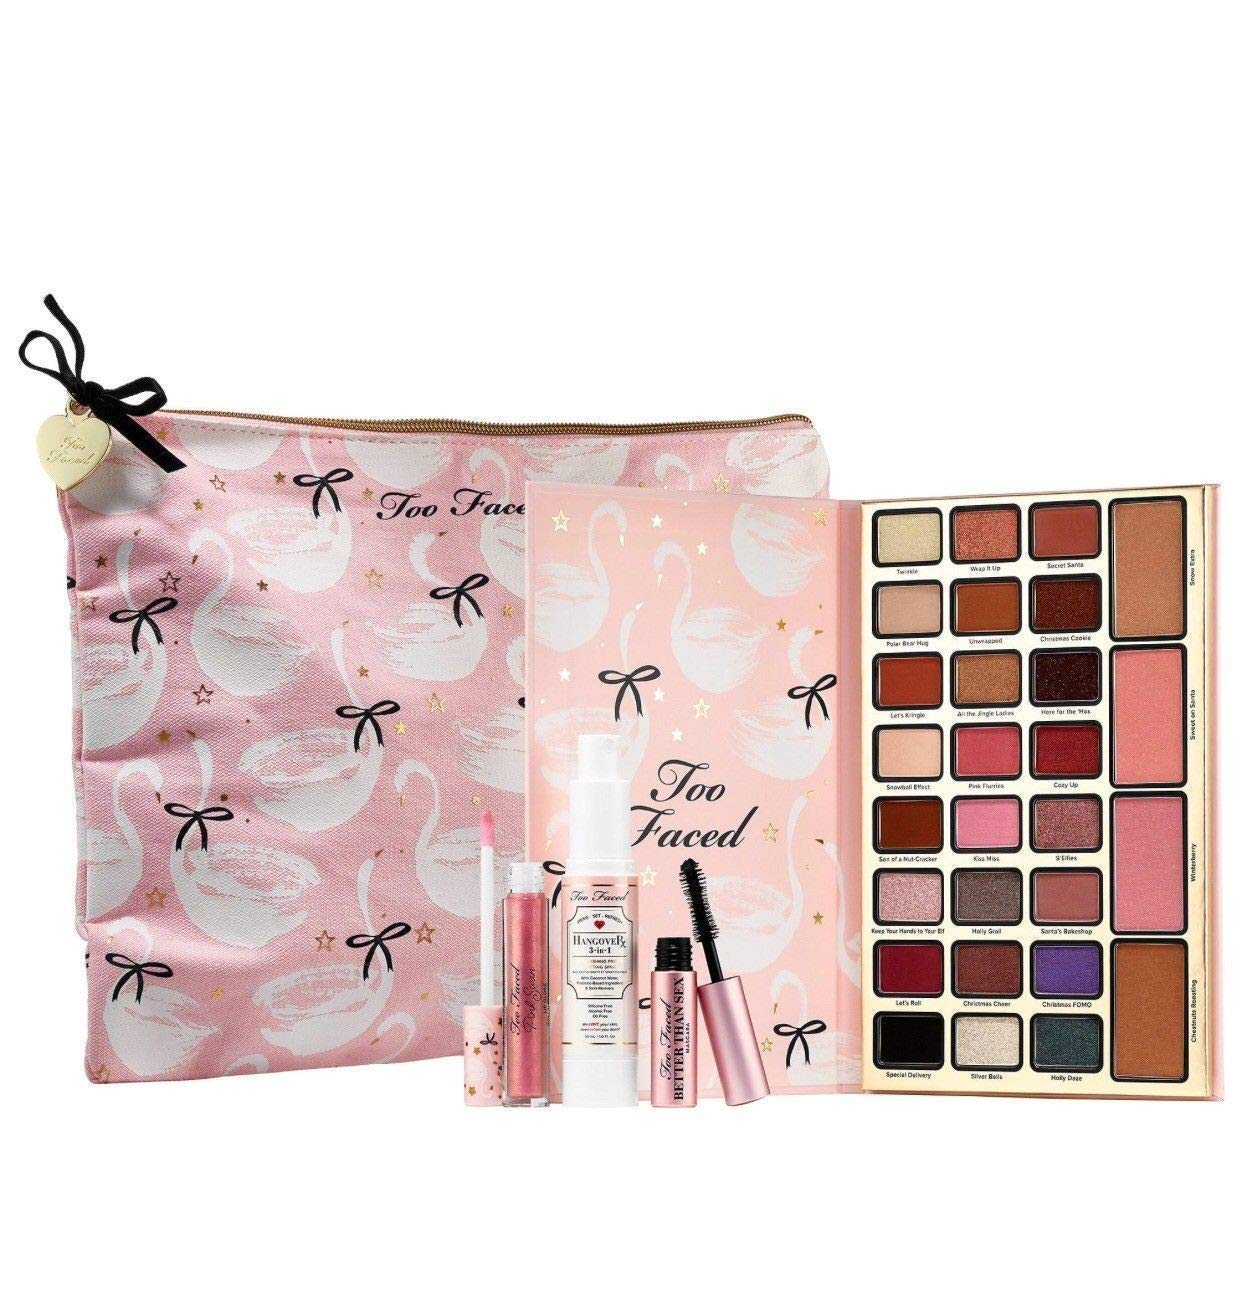 TOO FACED Dream Queen Limited-Edition Make Up Collection by Too Faced